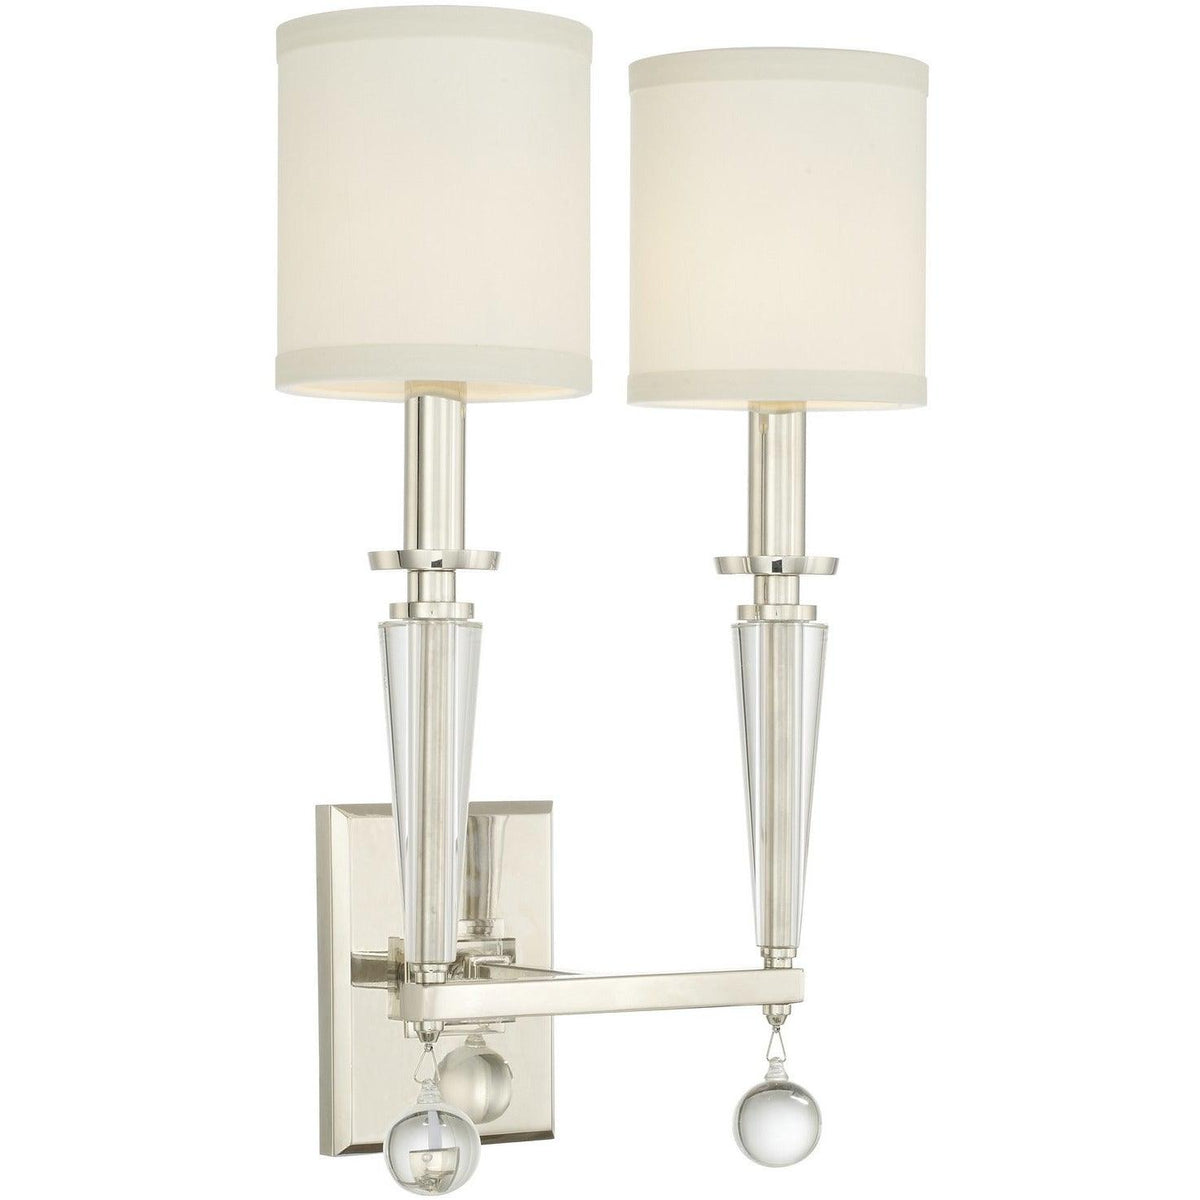 Crystorama - 8102-PN - Two Light Wall Mount - Paxton - Polished Nickel